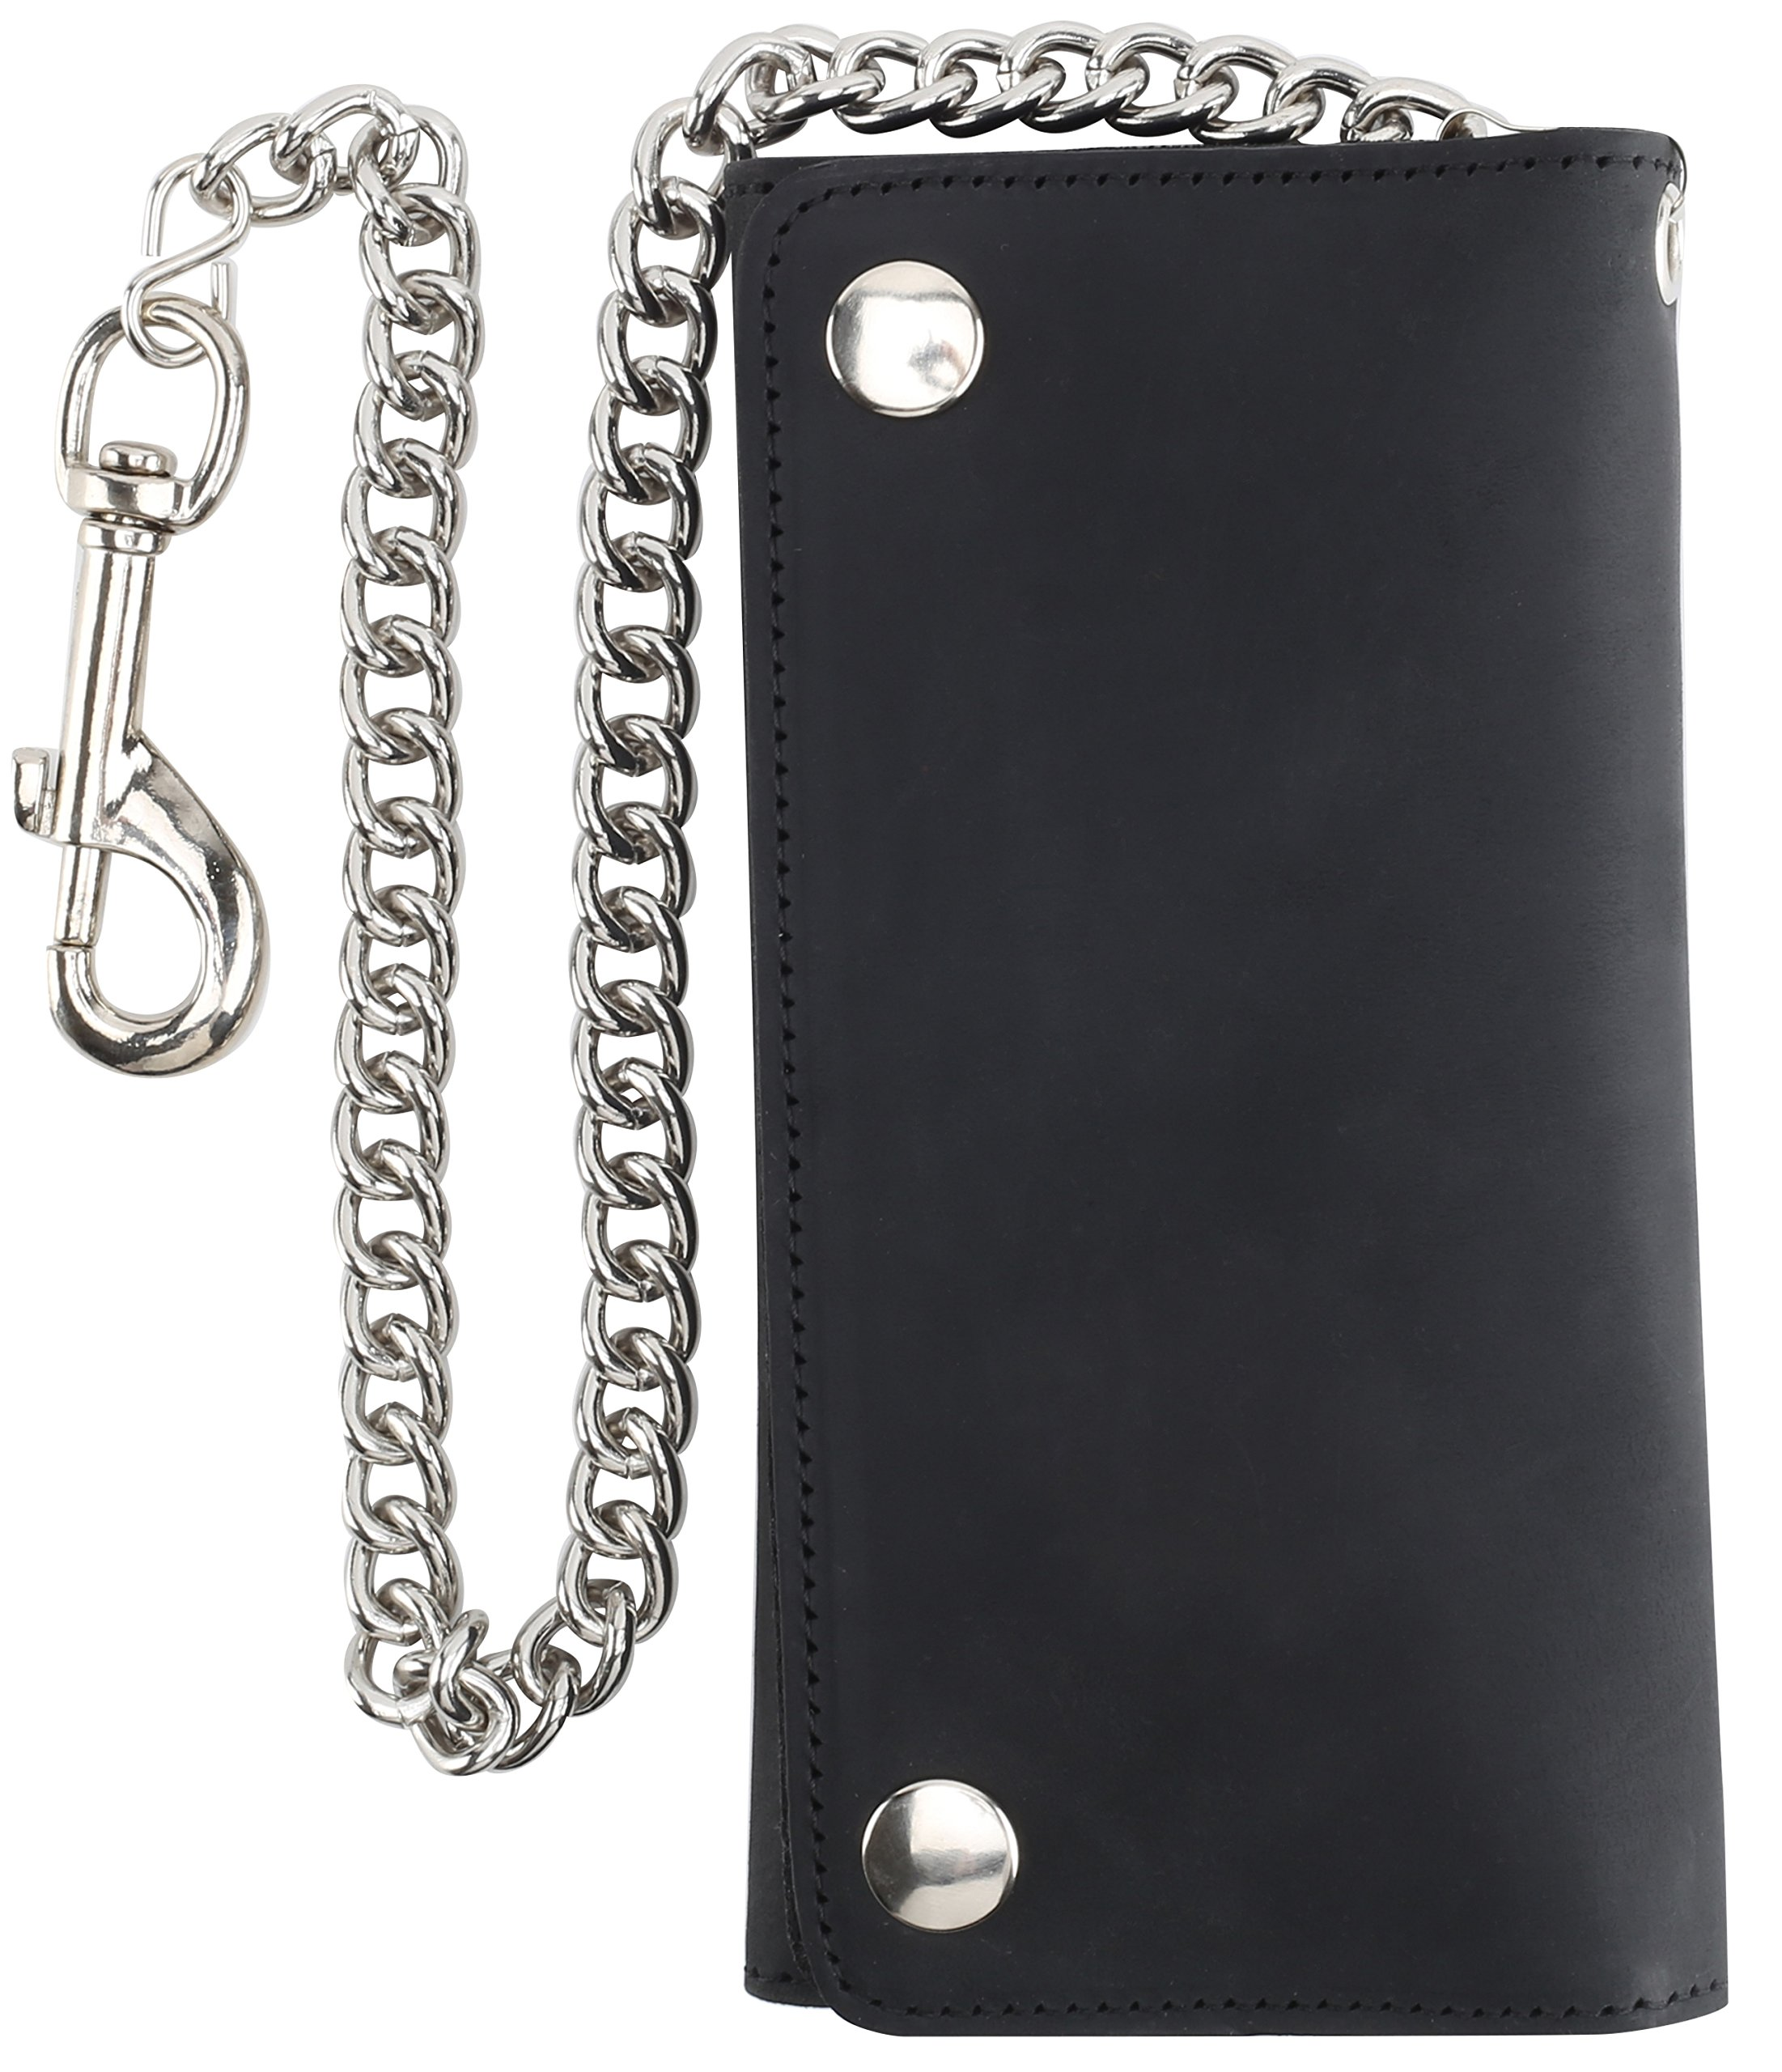 RFID Blocking Men's Tri-fold Vintage Long Style Cow Top Grain Leather Steel Chain Wallet,Made In USA,Snap closure,bw339,solid black